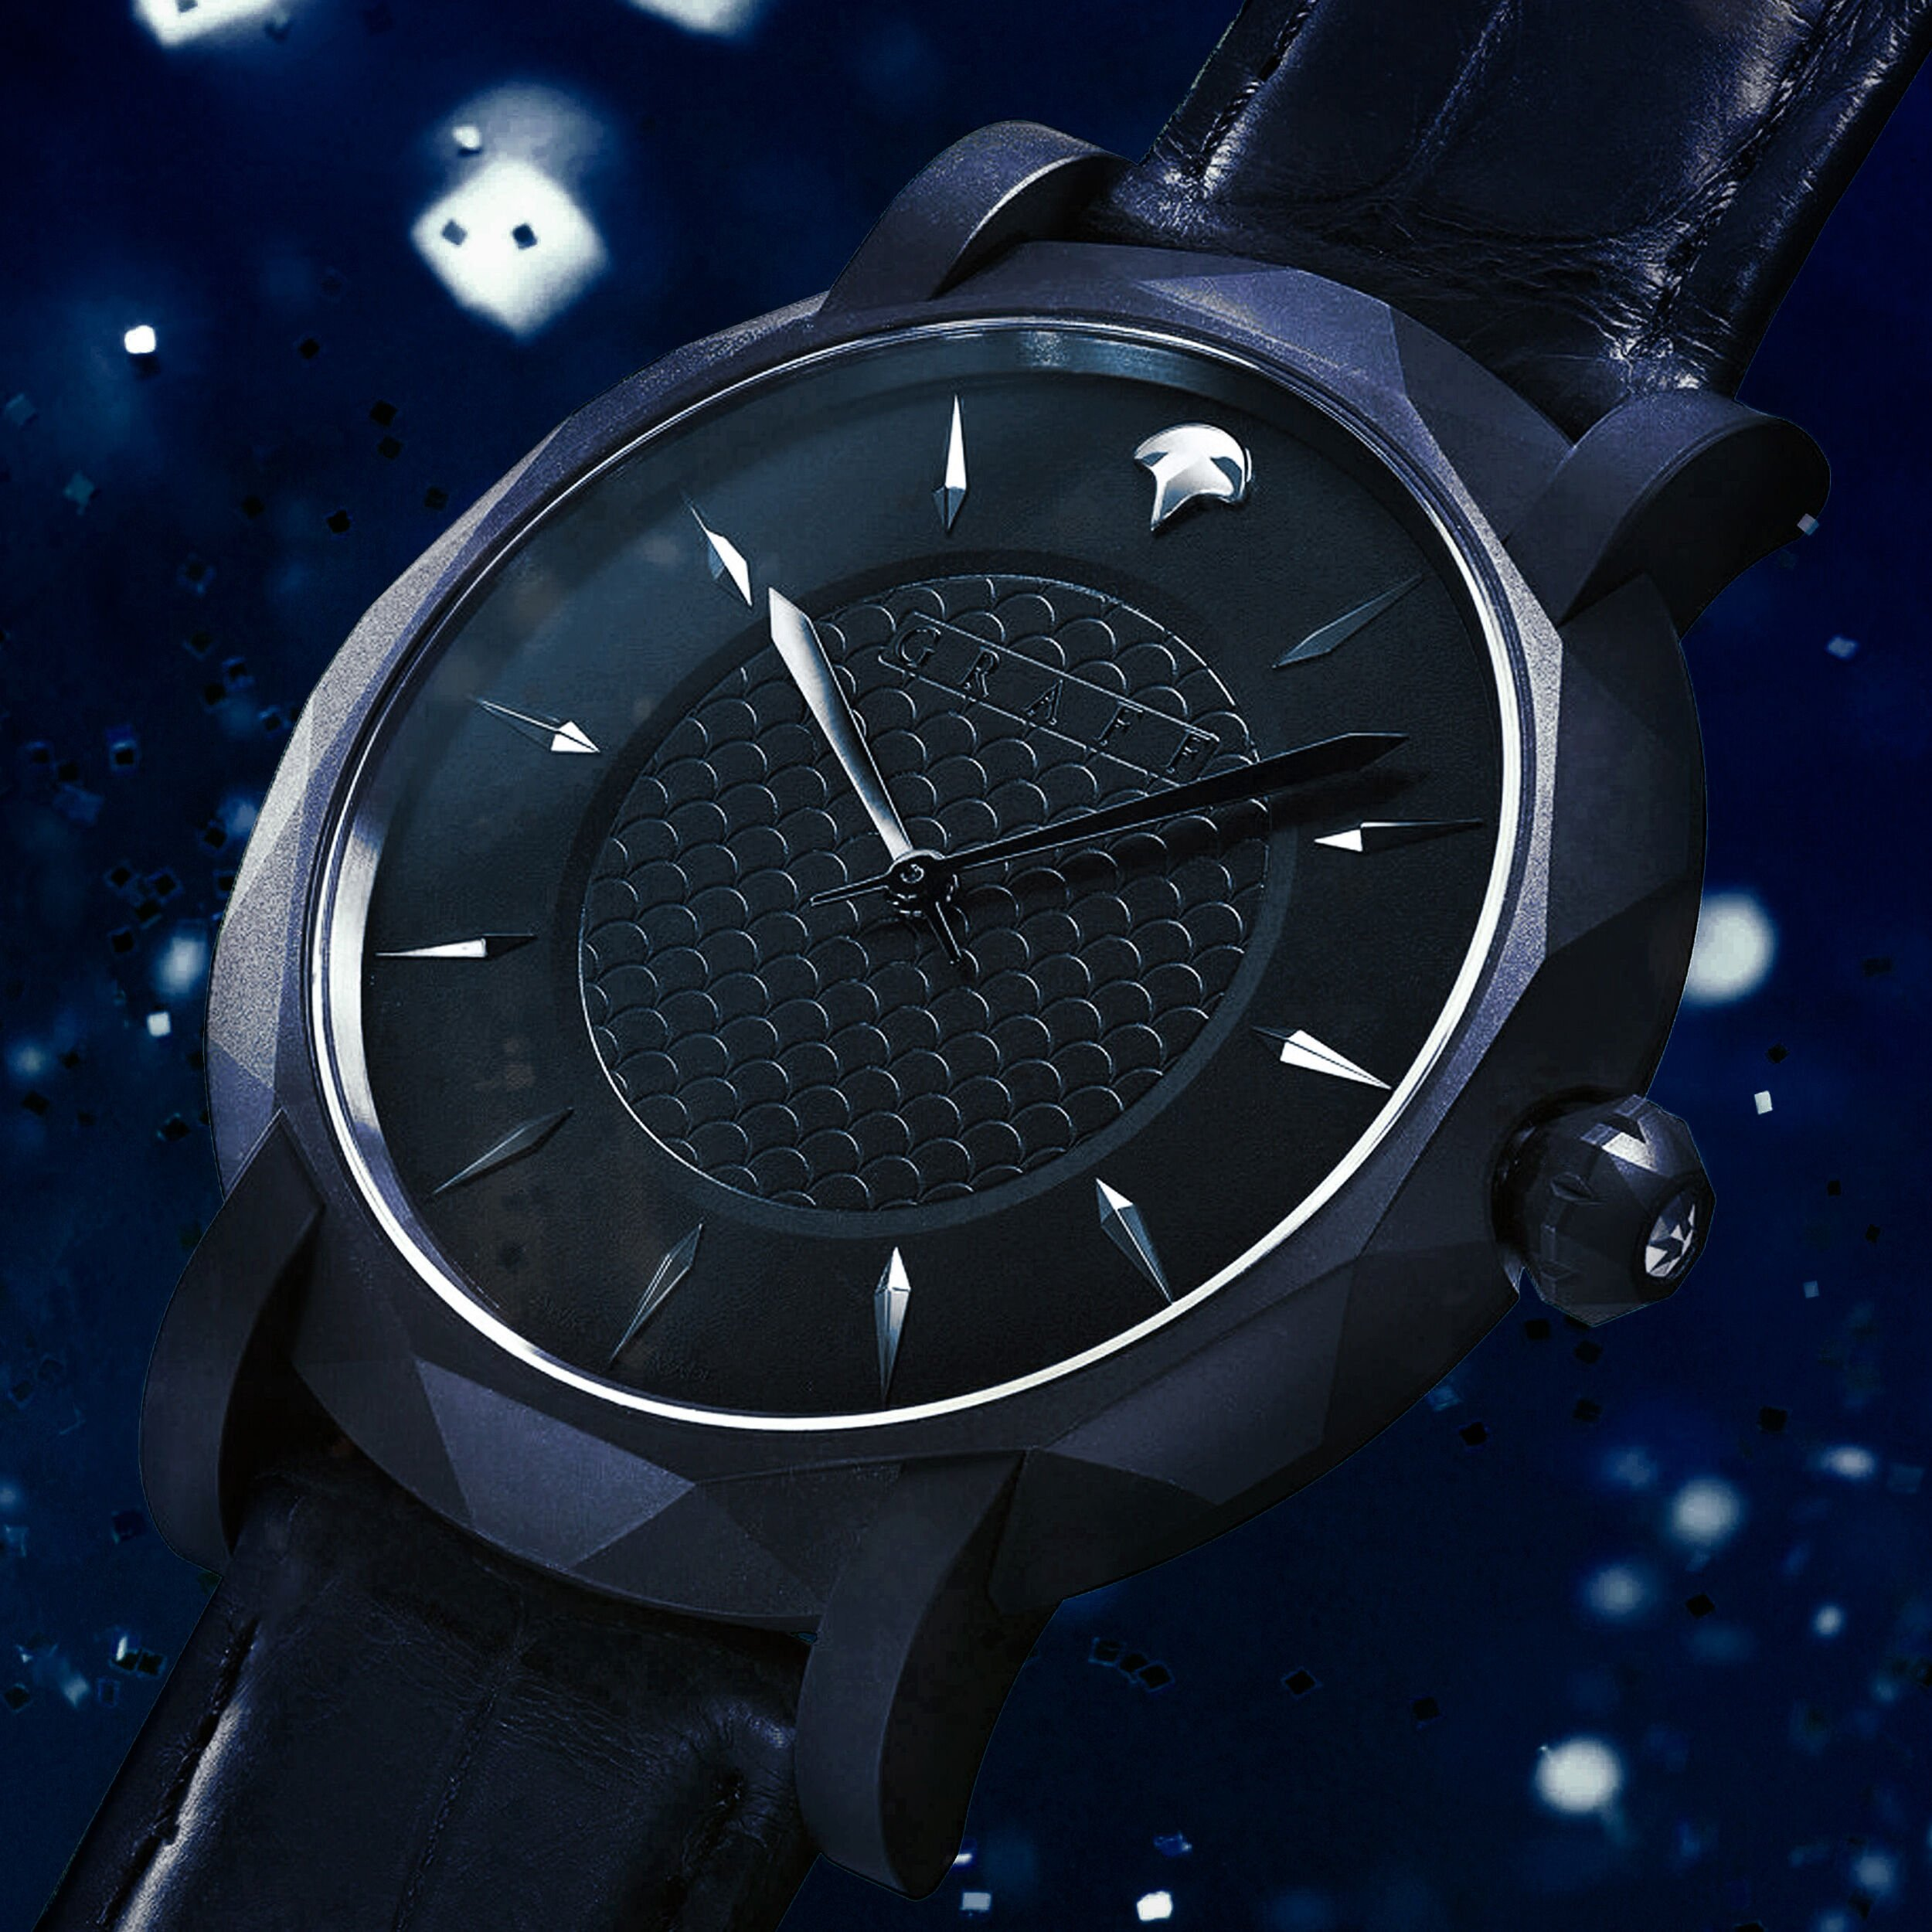 Graff Eclipse watch